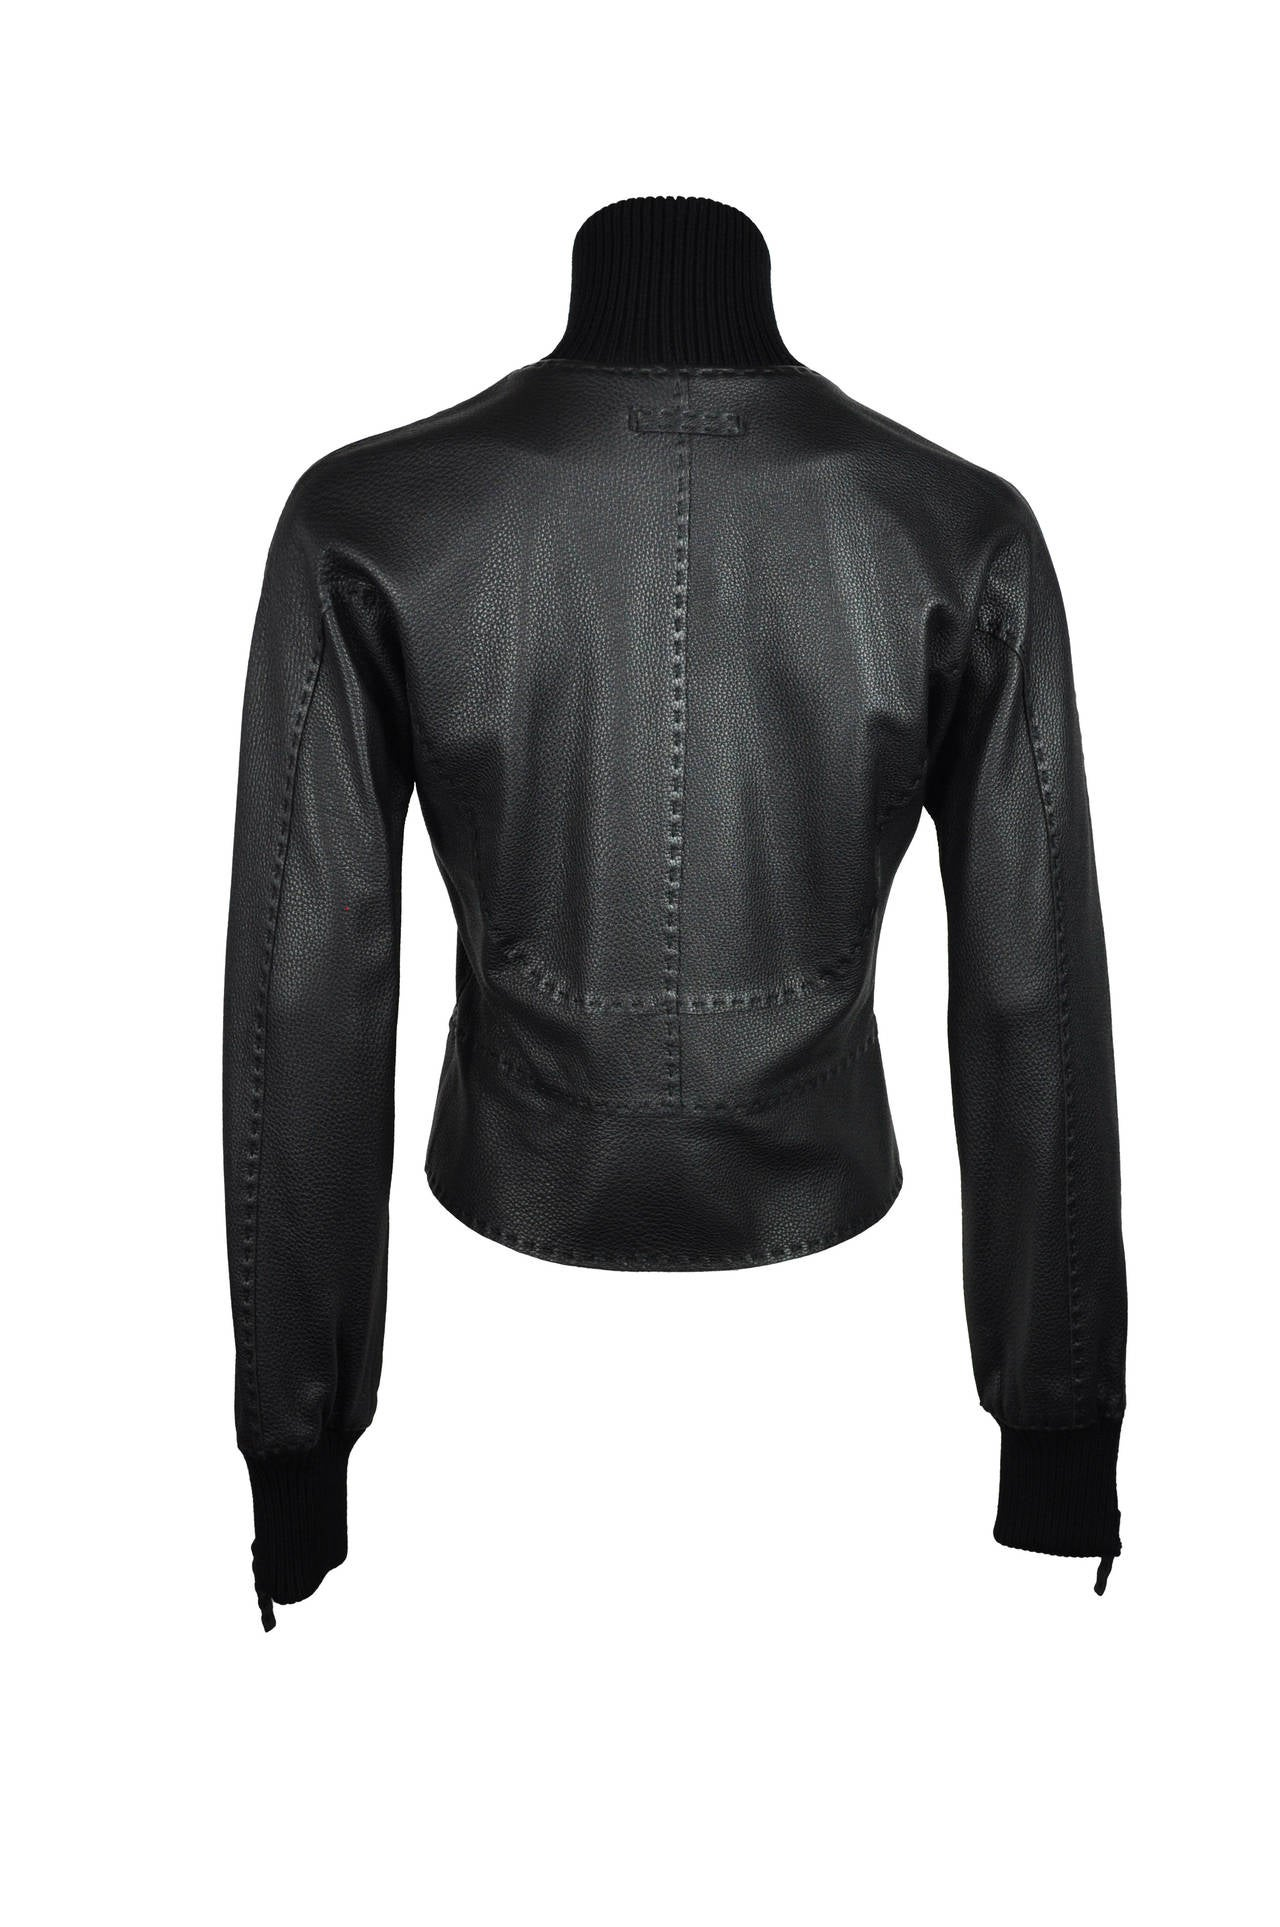 Jean Paul Gaultier Black Deer Leather Bomber Jacket 3